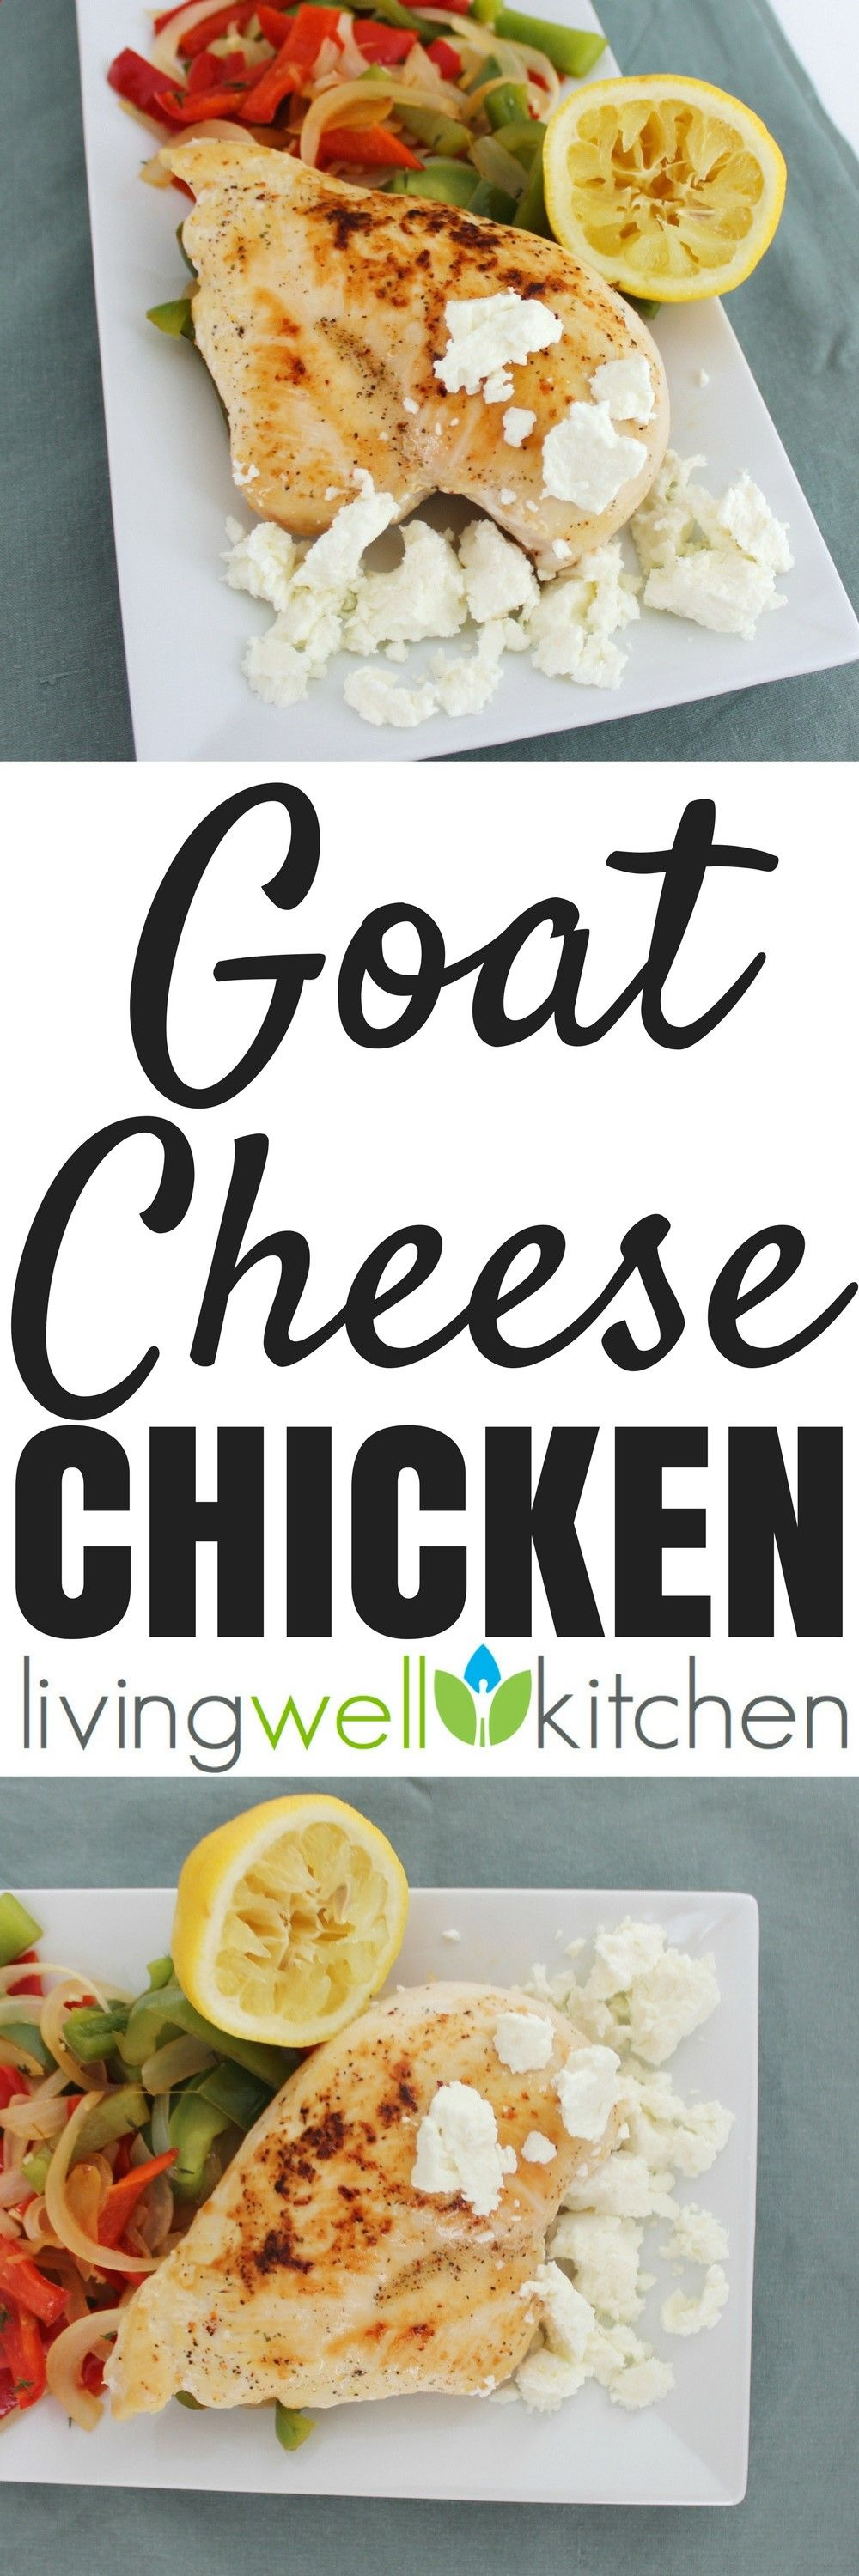 Goat Cheese Chicken recipe from Meme // Living Well Kitchen is an ...